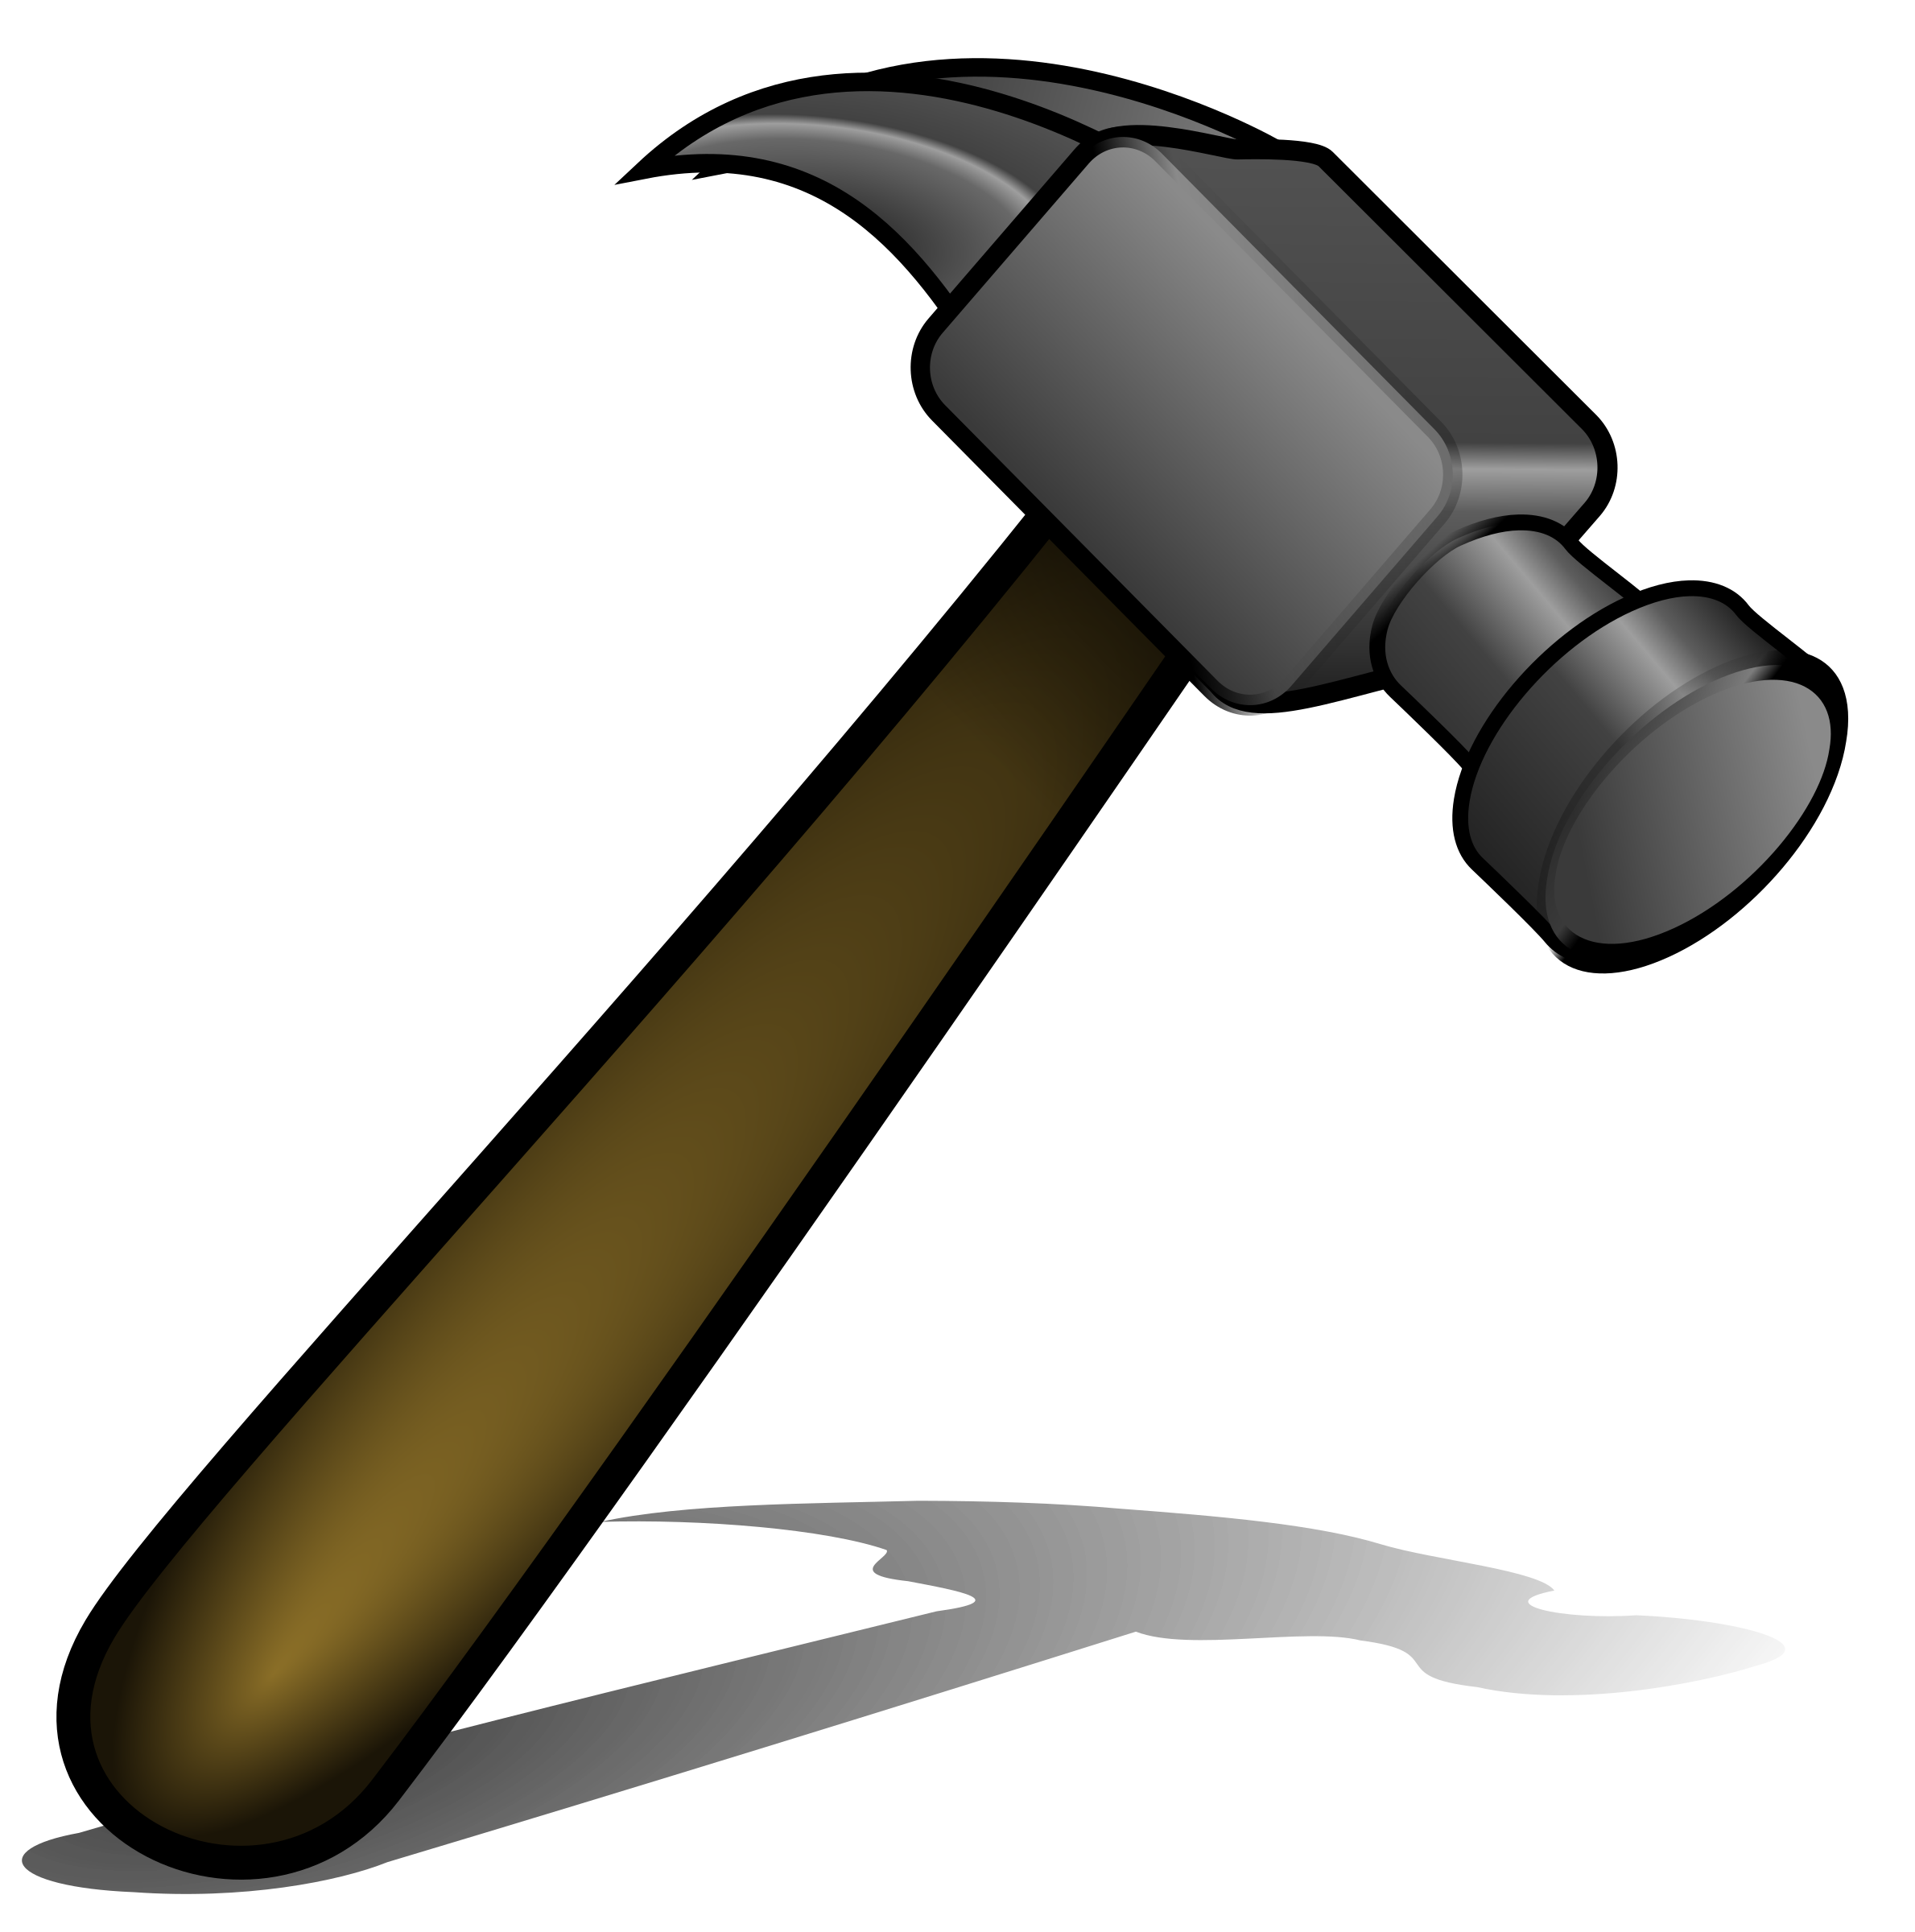 Hammer by david_benjamin